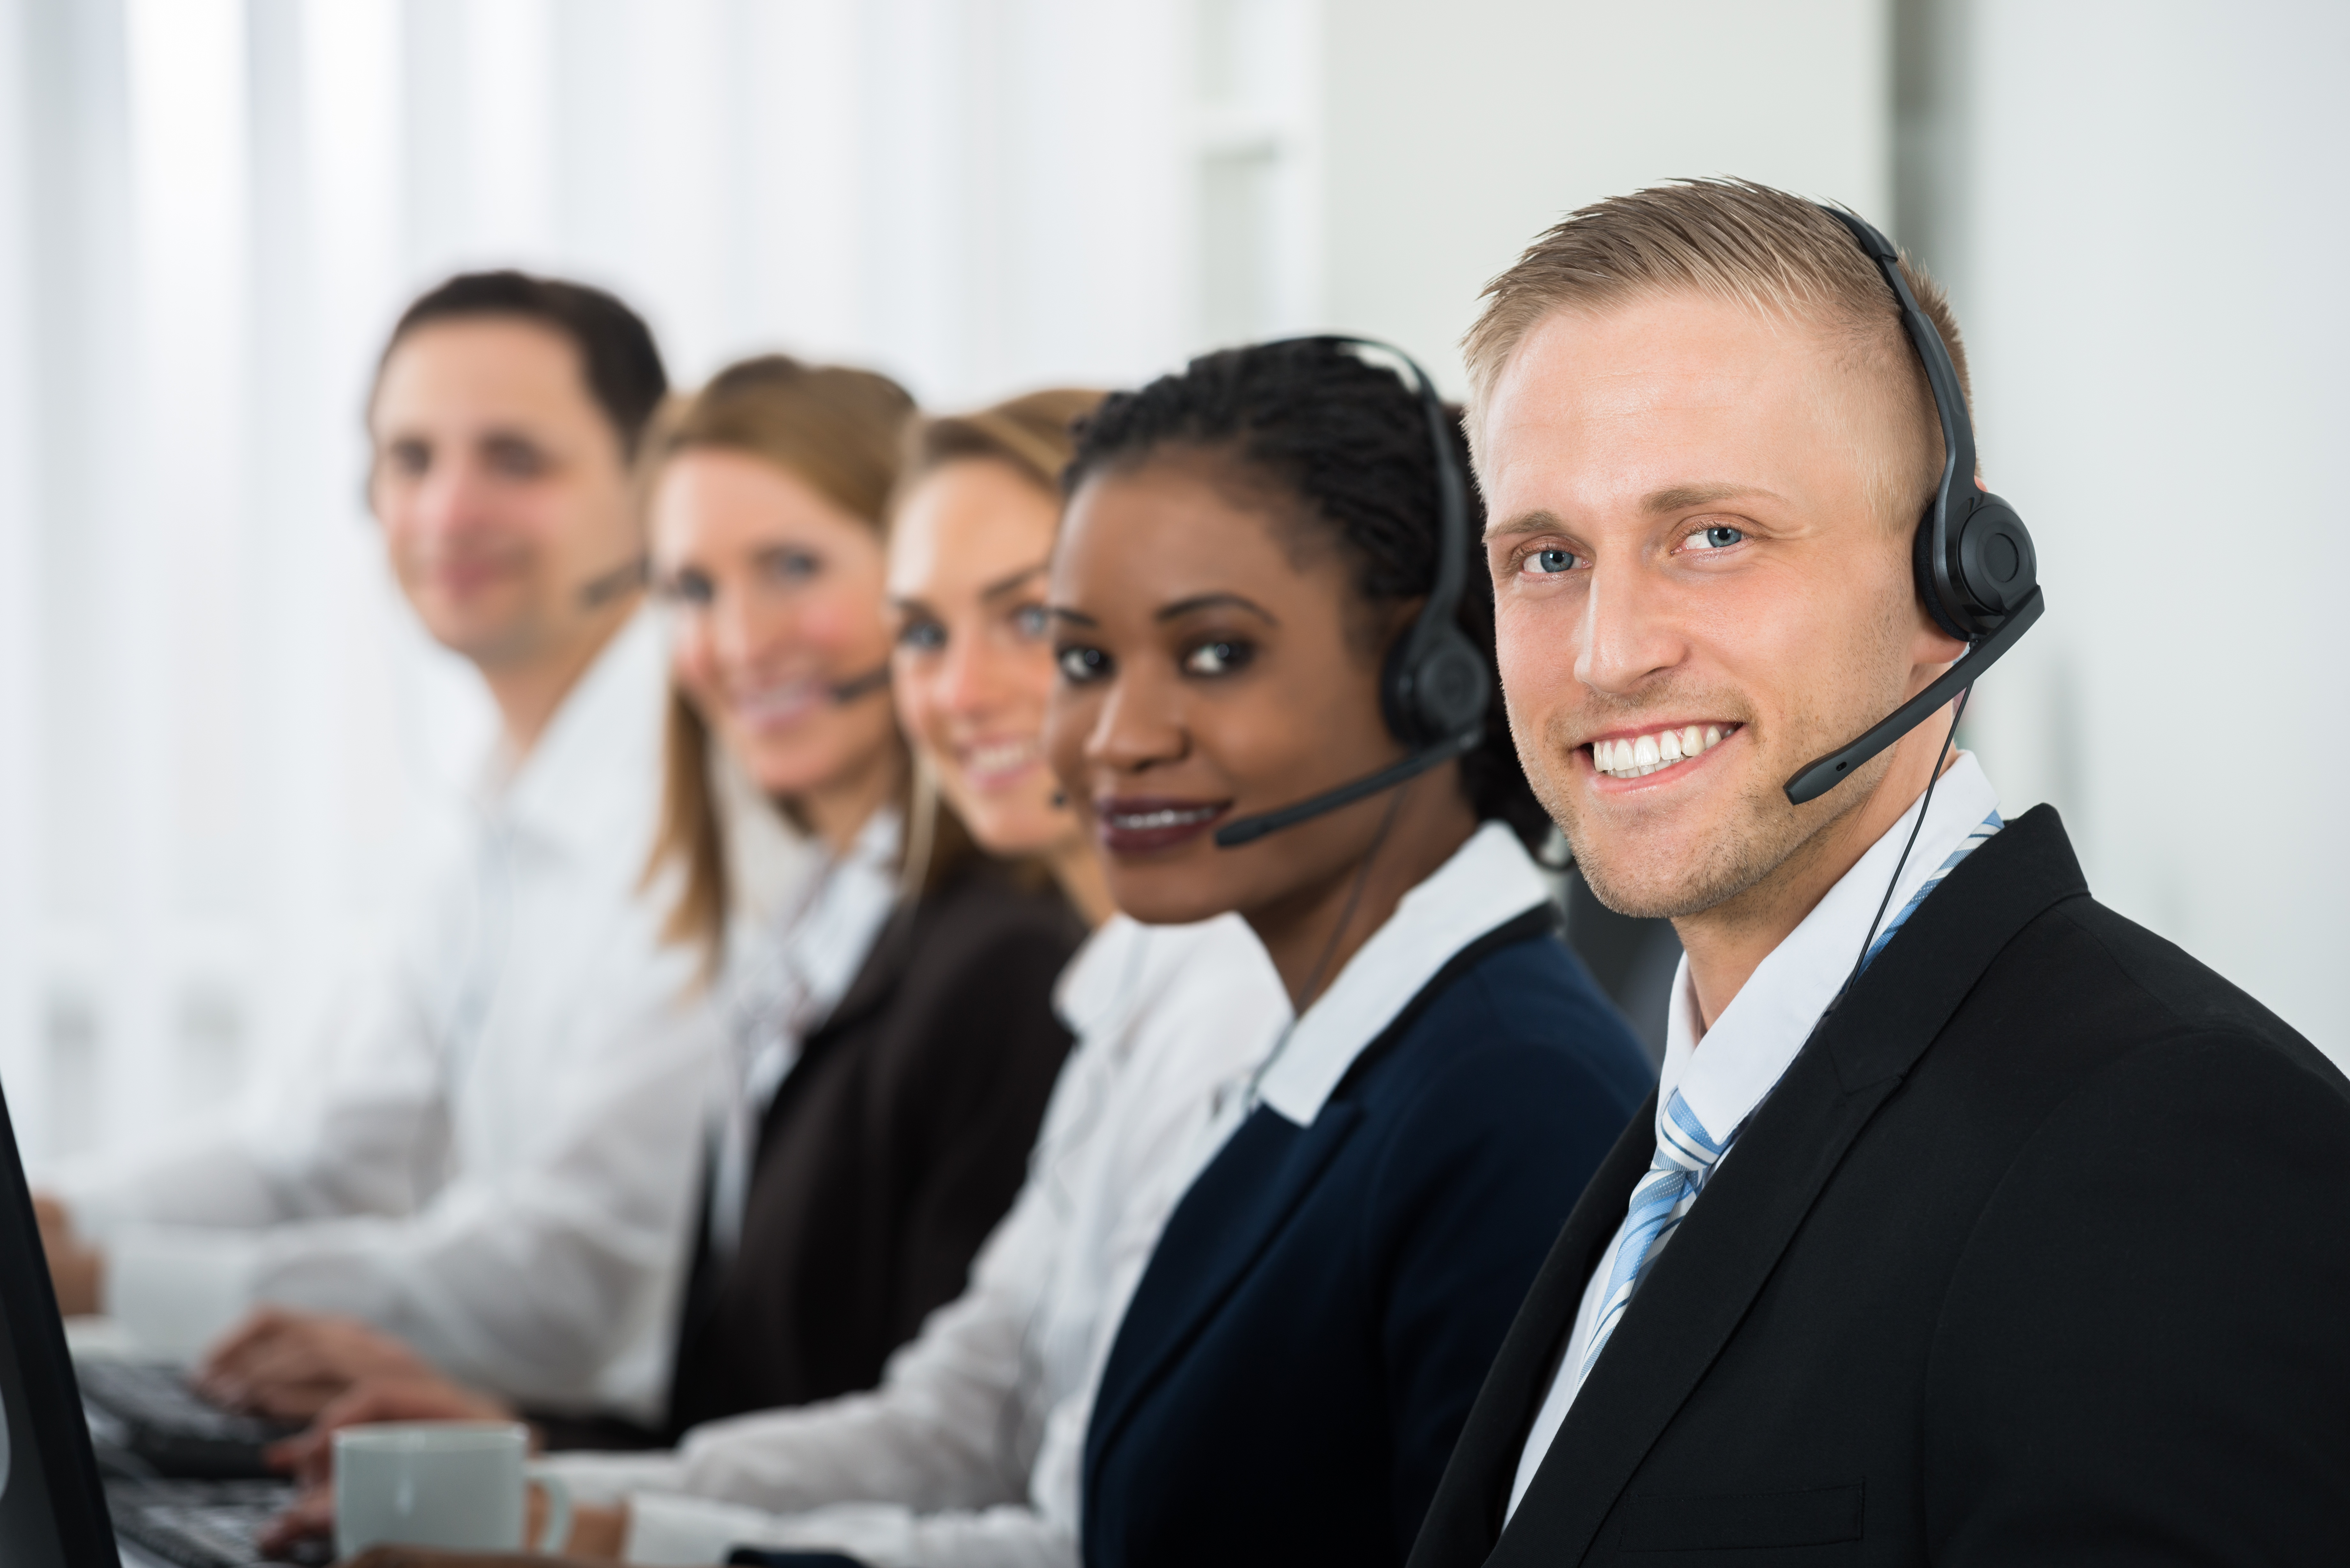 Image of call center agents in formal attire.